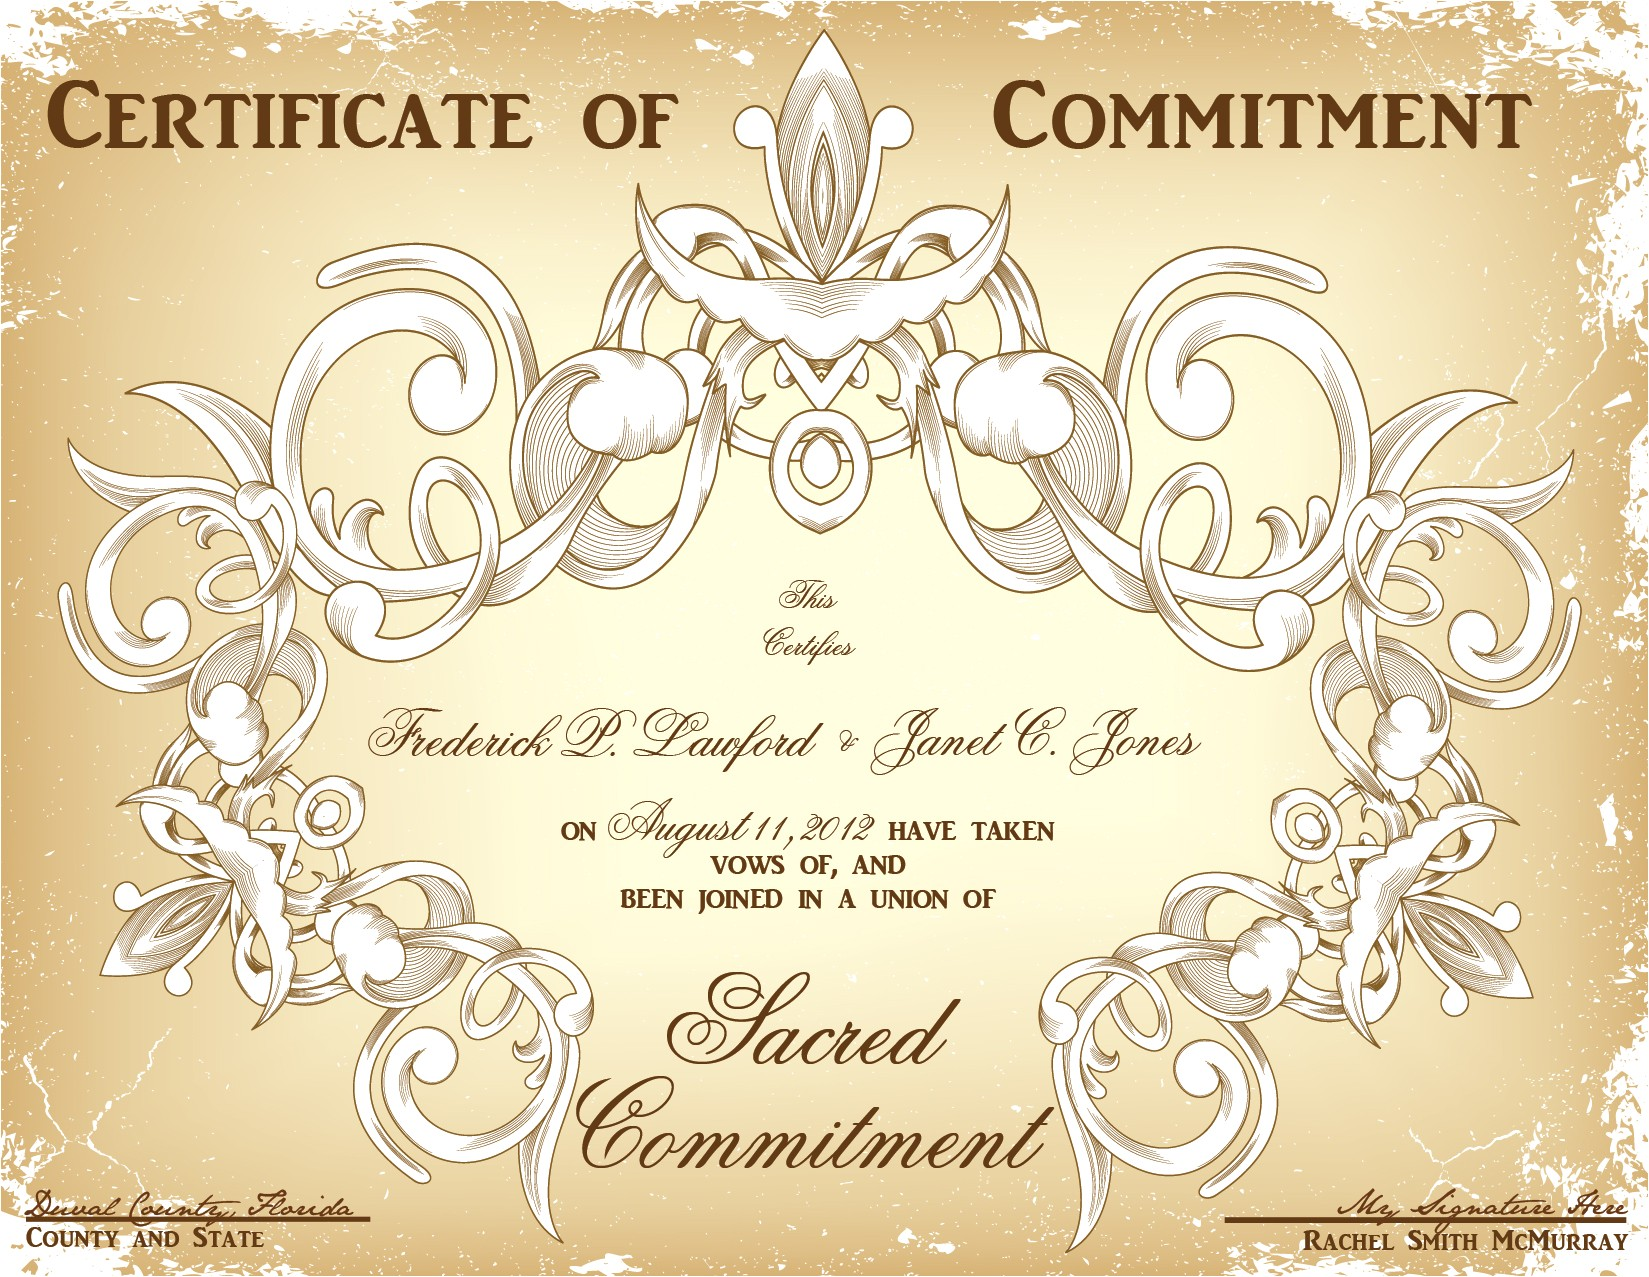 Wedding Ceremony Certificate Template Wedding Planner Marriage Commitment Ceremony